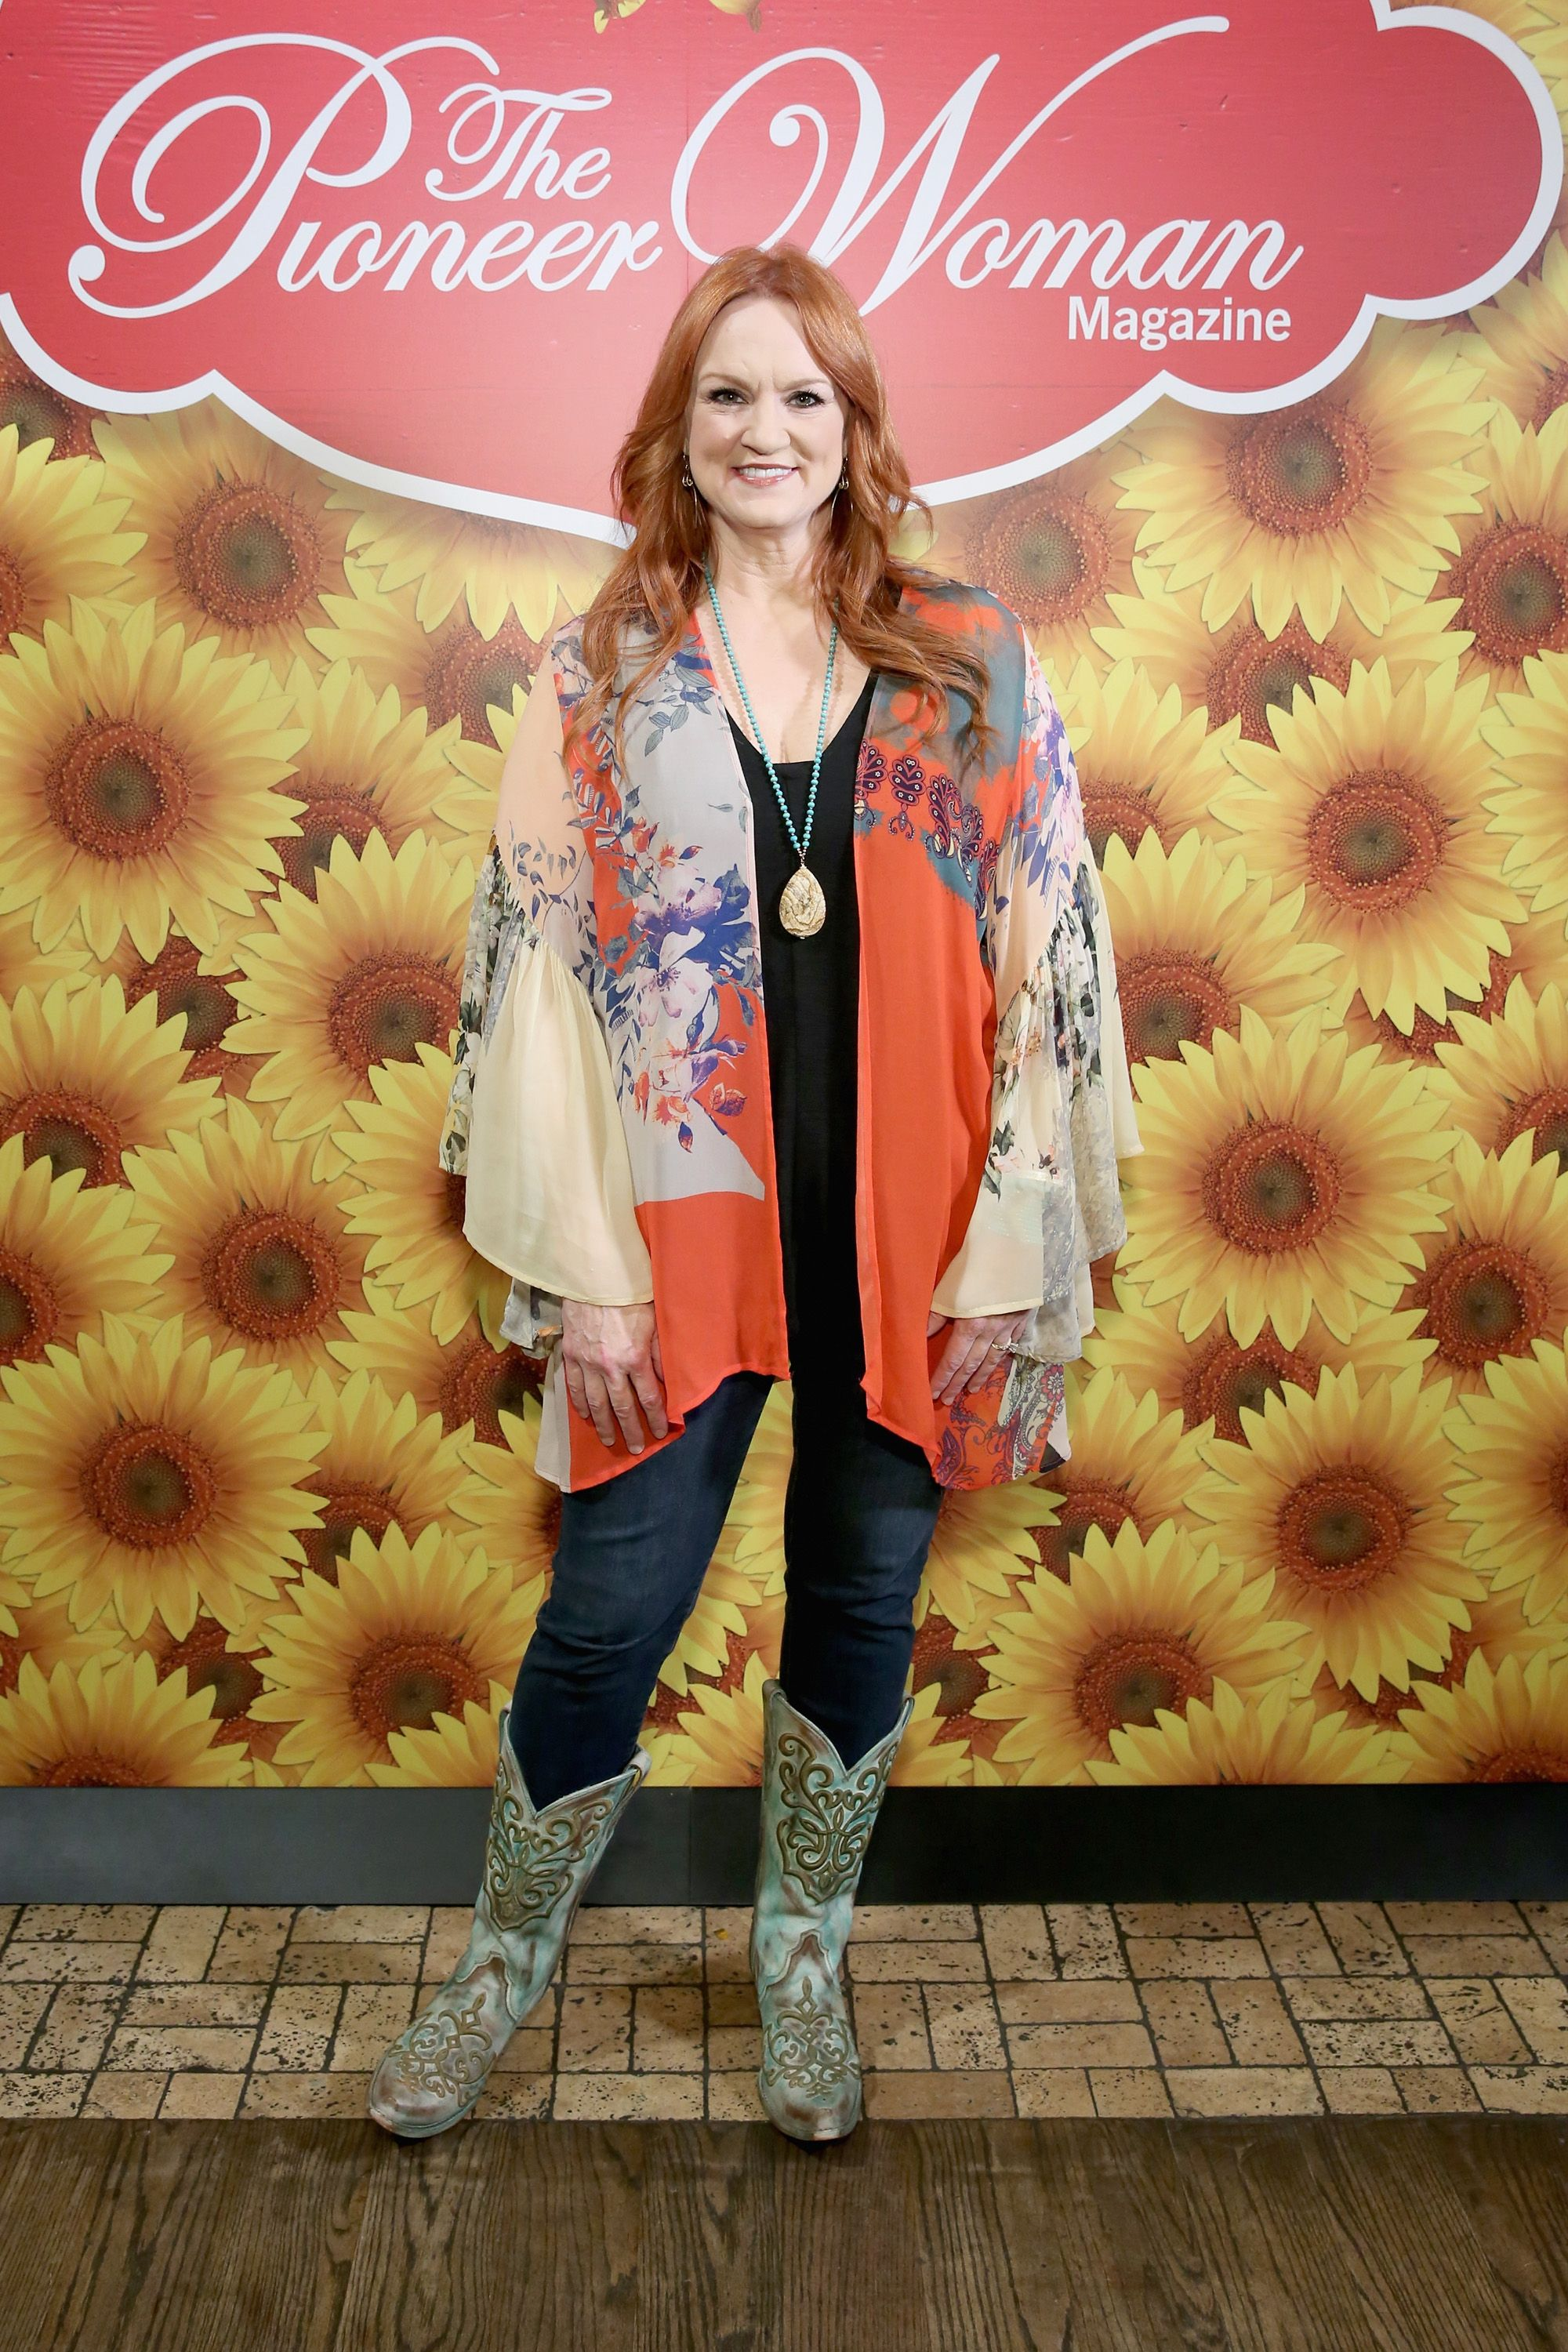 """Ree Drummond at """"The Pioneer Woman Magazine Celebration with Ree Drummond"""" on June 6, 2017, in New York City 